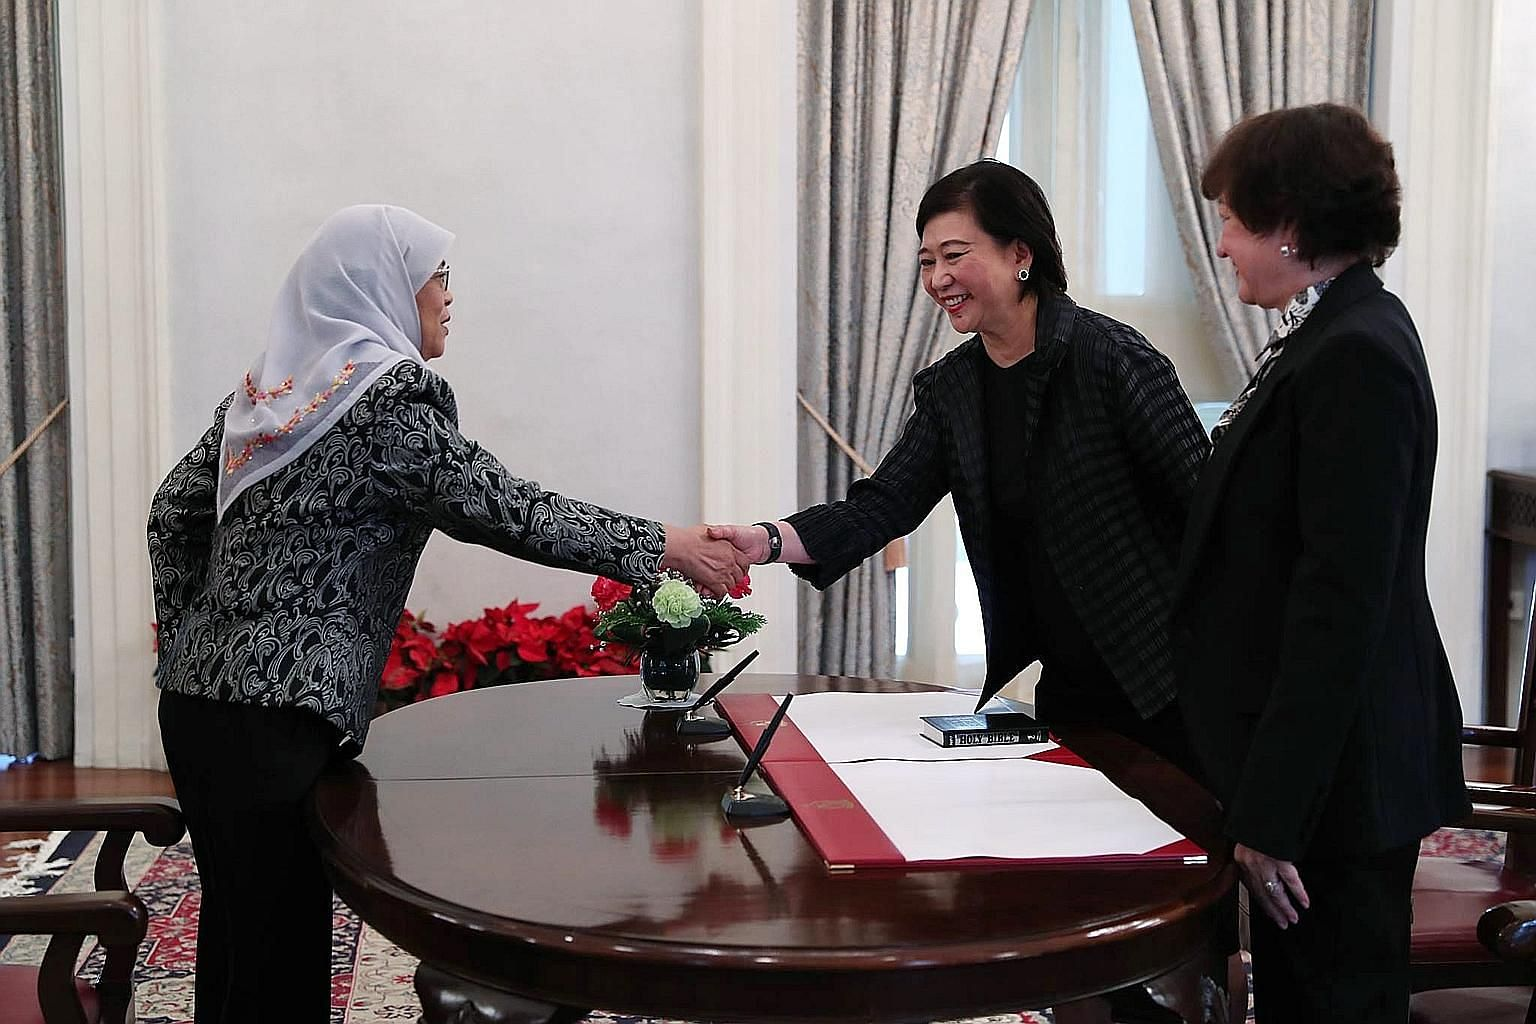 President Halimah Yacob shaking hands with Ms Chua Sock Koong, who took her oath before Judge of Appeal Judith Prakash at the Istana yesterday. Ms Chua is an alternate member of the Council of Presidential Advisers.